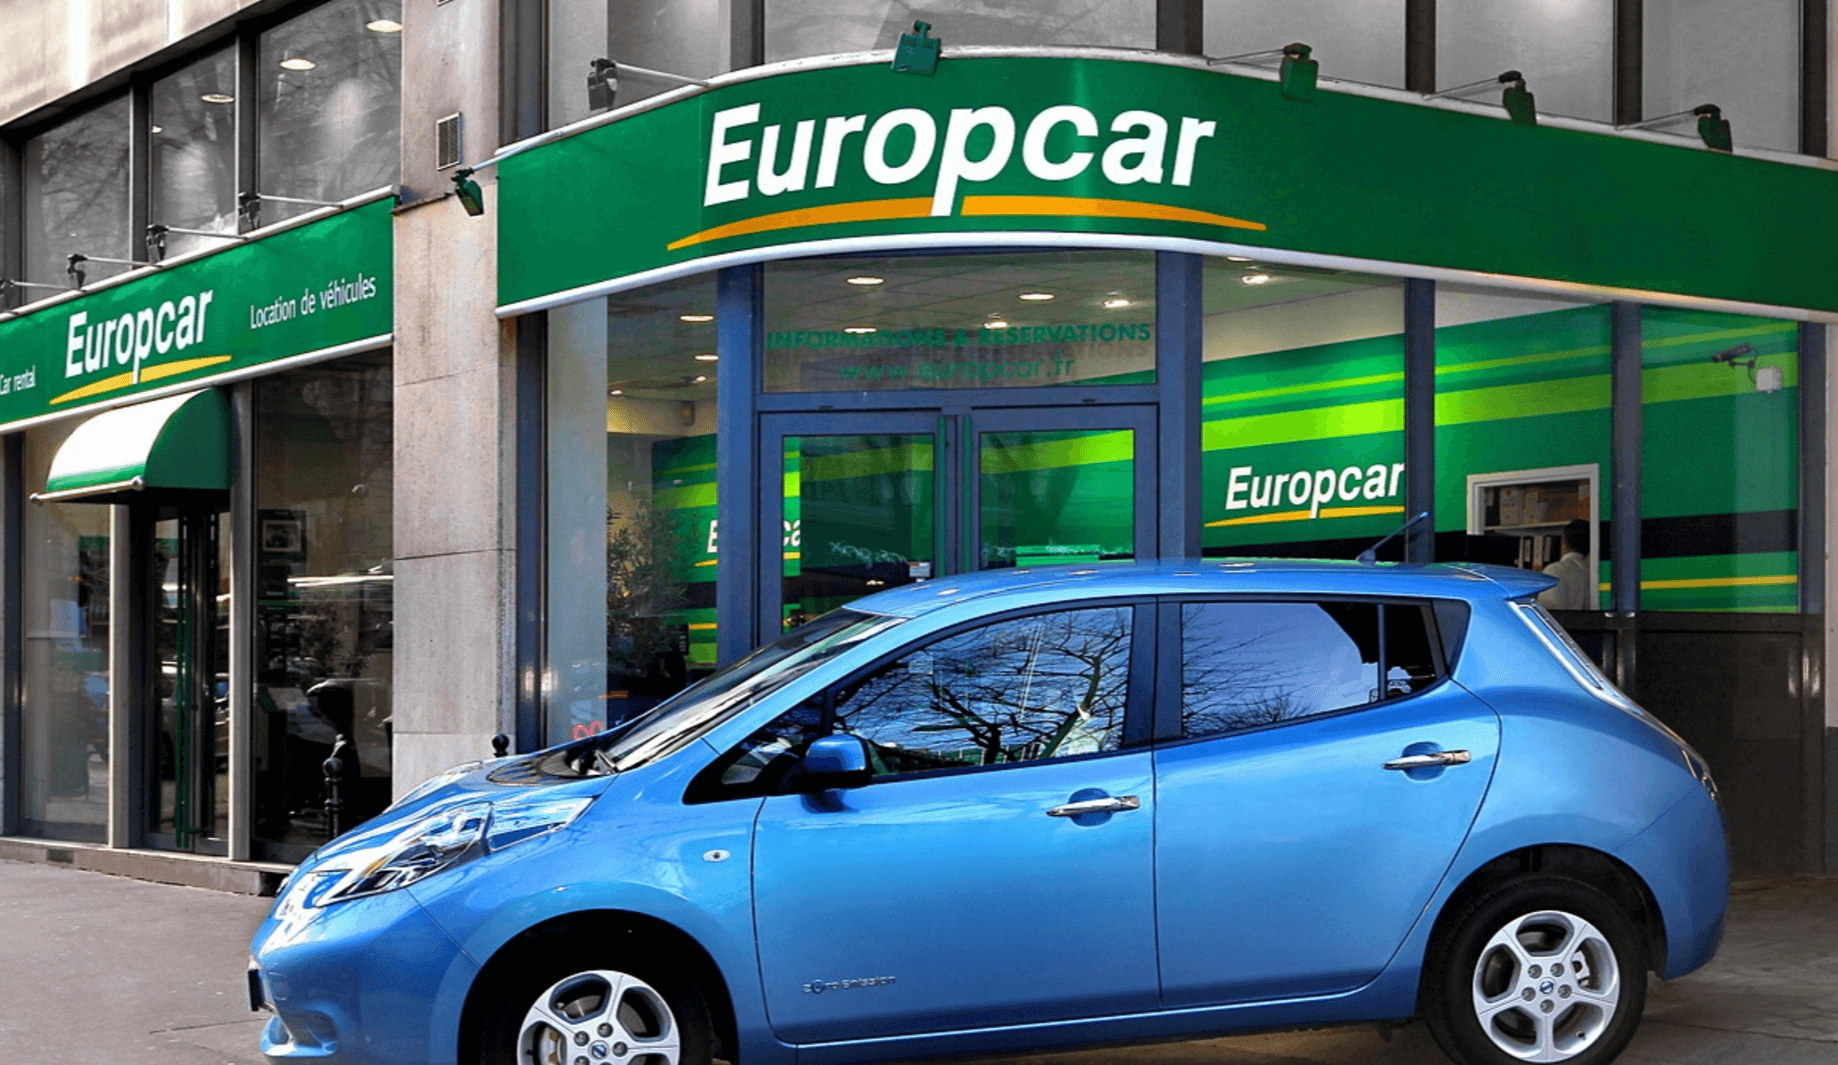 Europcar One Way Car Rentals Across Europe For Only 163 1 1